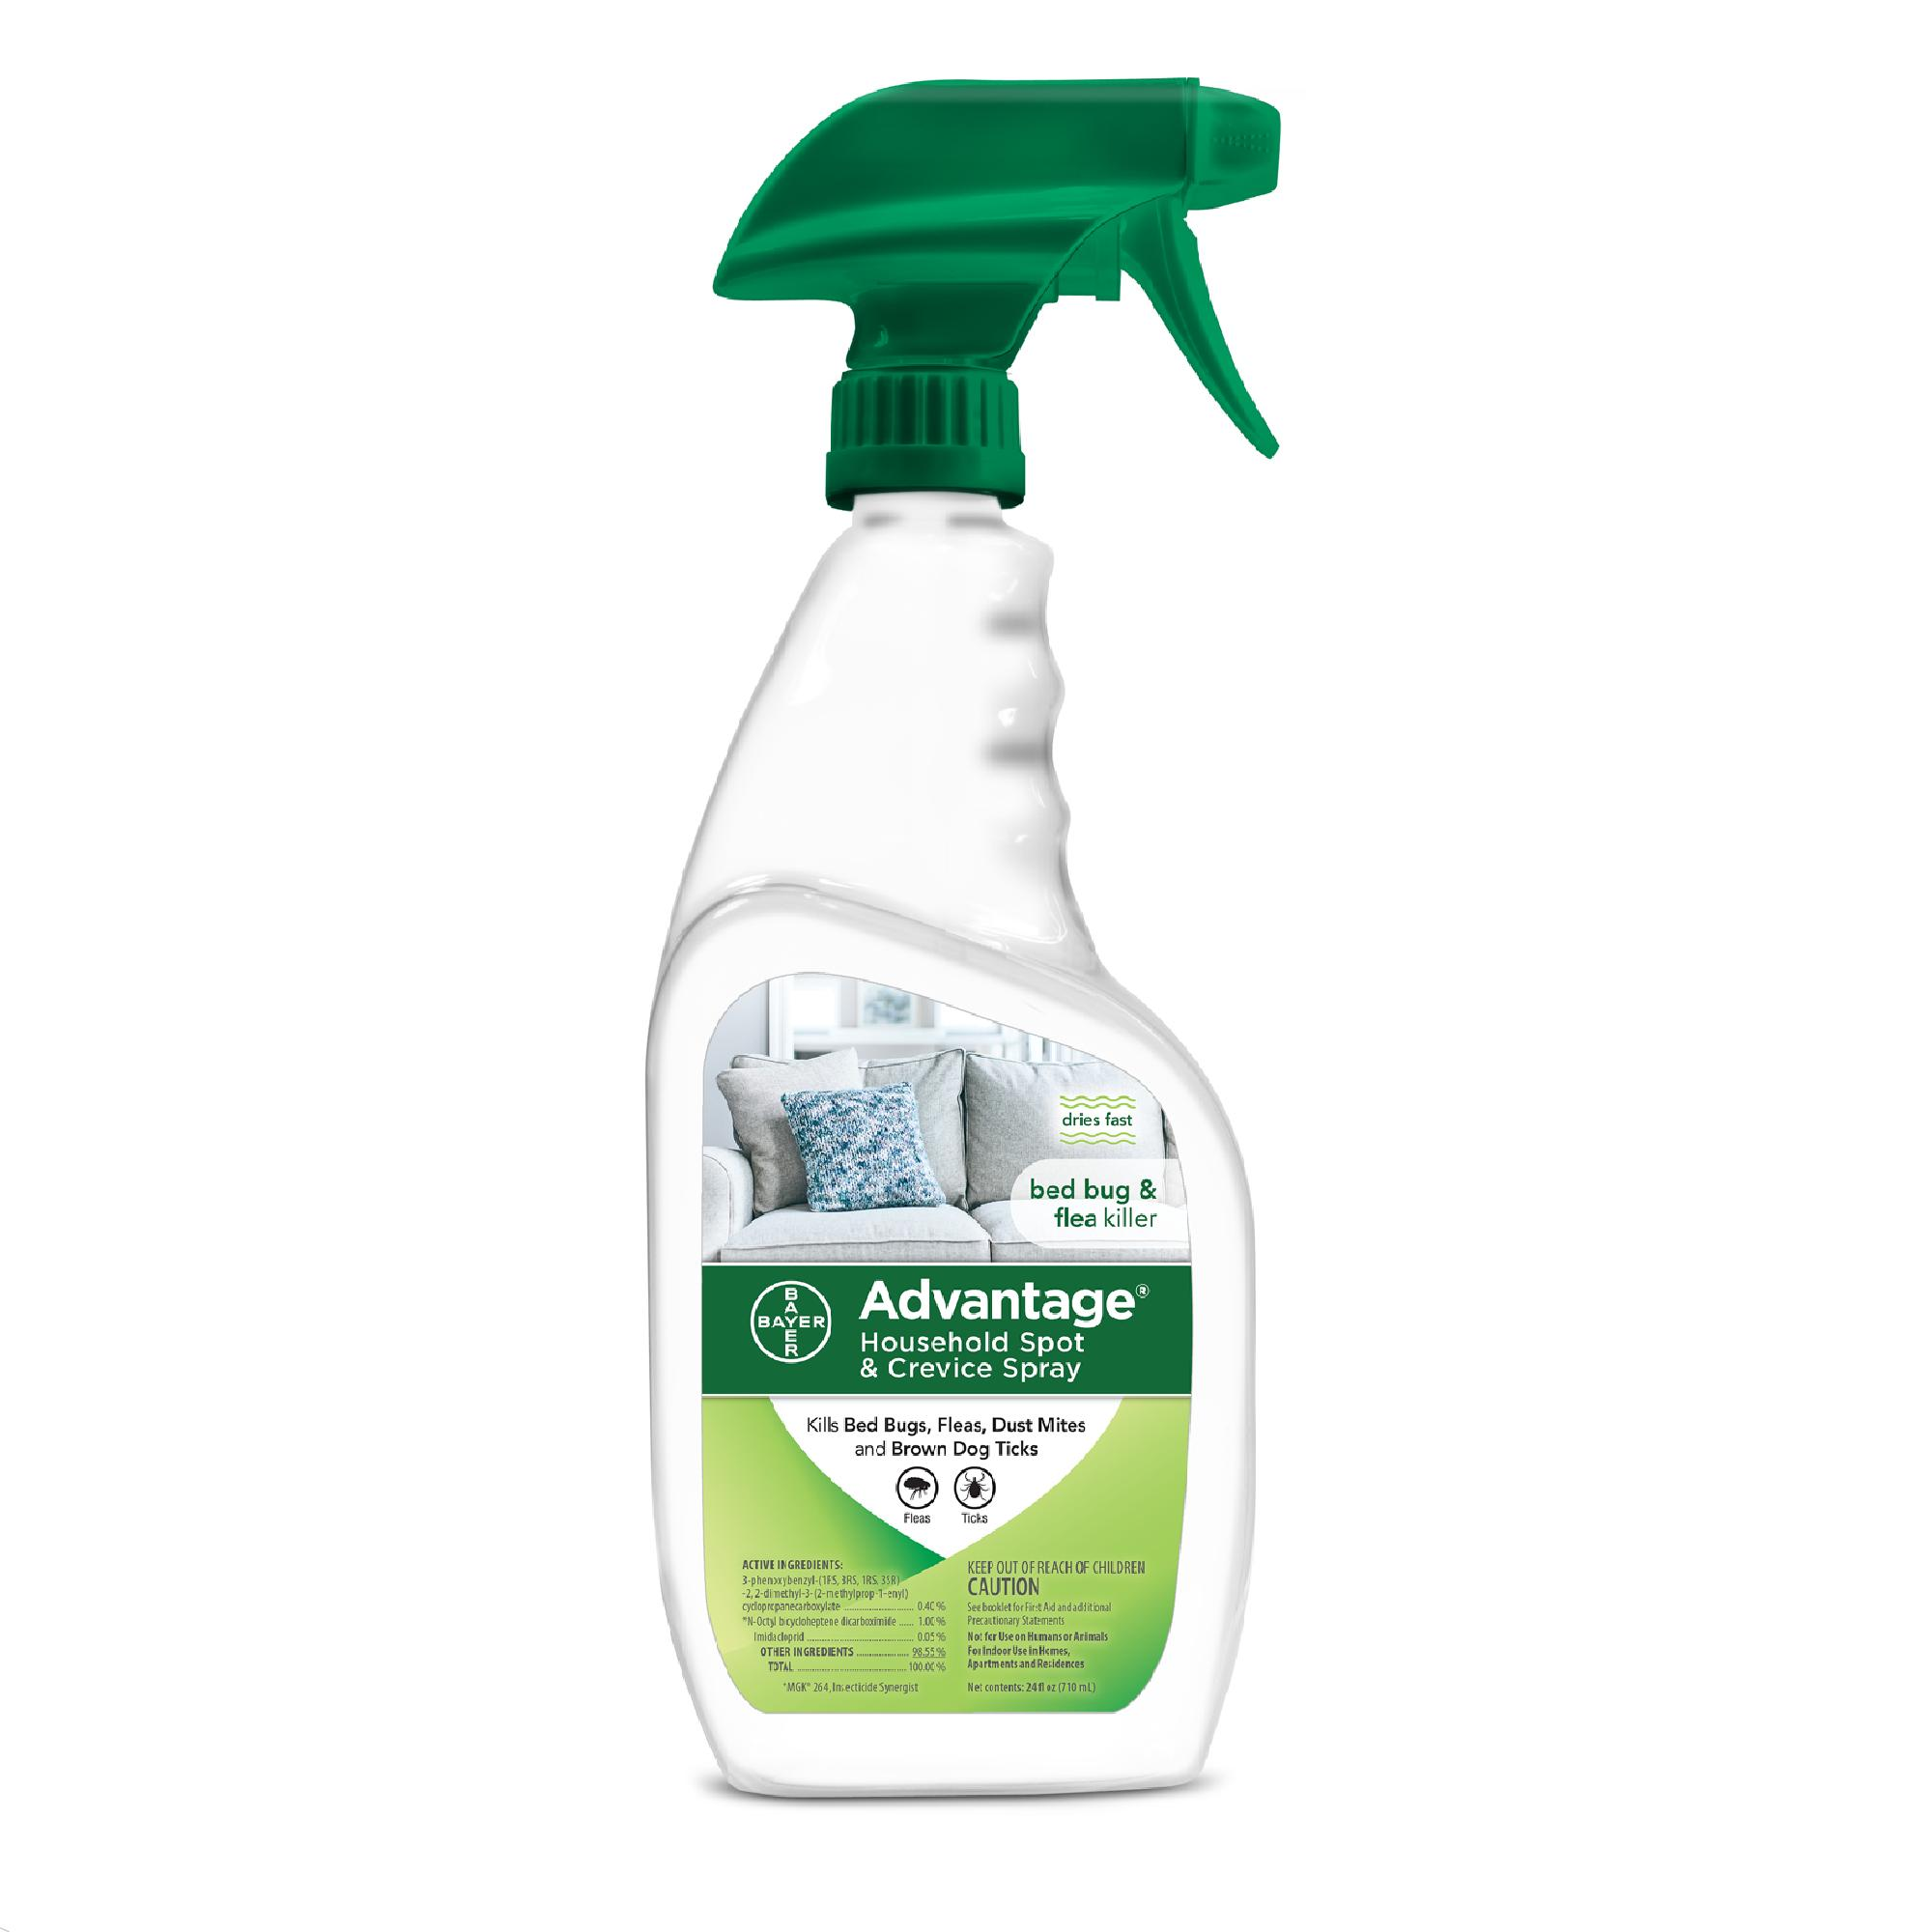 Advantage Household Spot & Crevice Spray, 24-oz Image